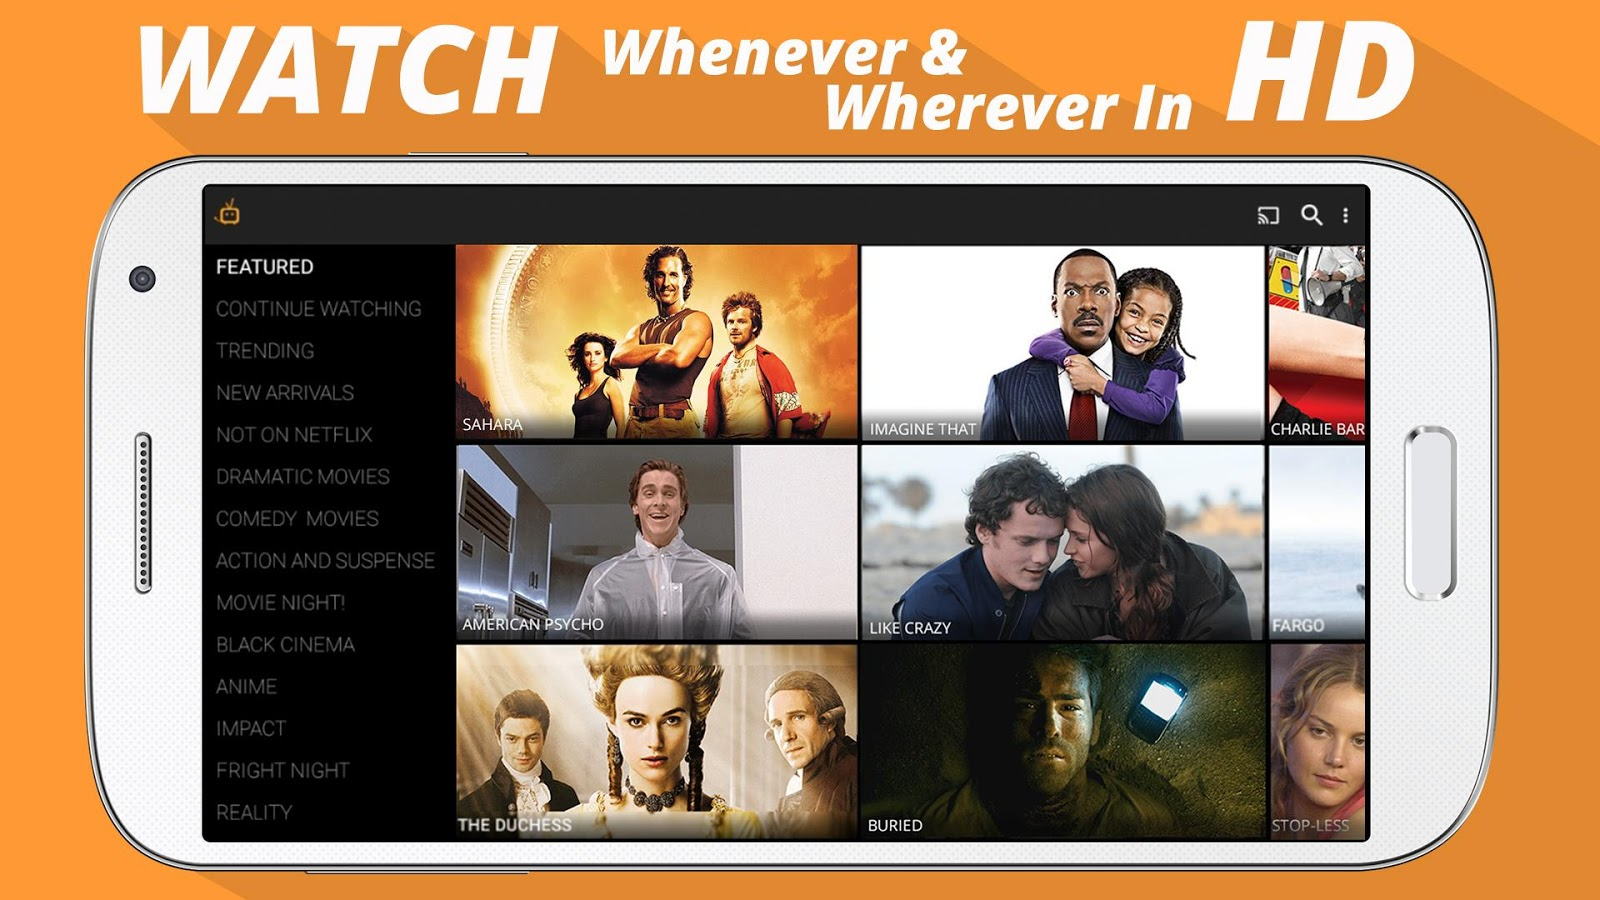 Phone How To Watch Free Movies On Android Phone tubi tv top free streaming app for android movies shows all devices watch hd documentaries on phone tablets boxes fire